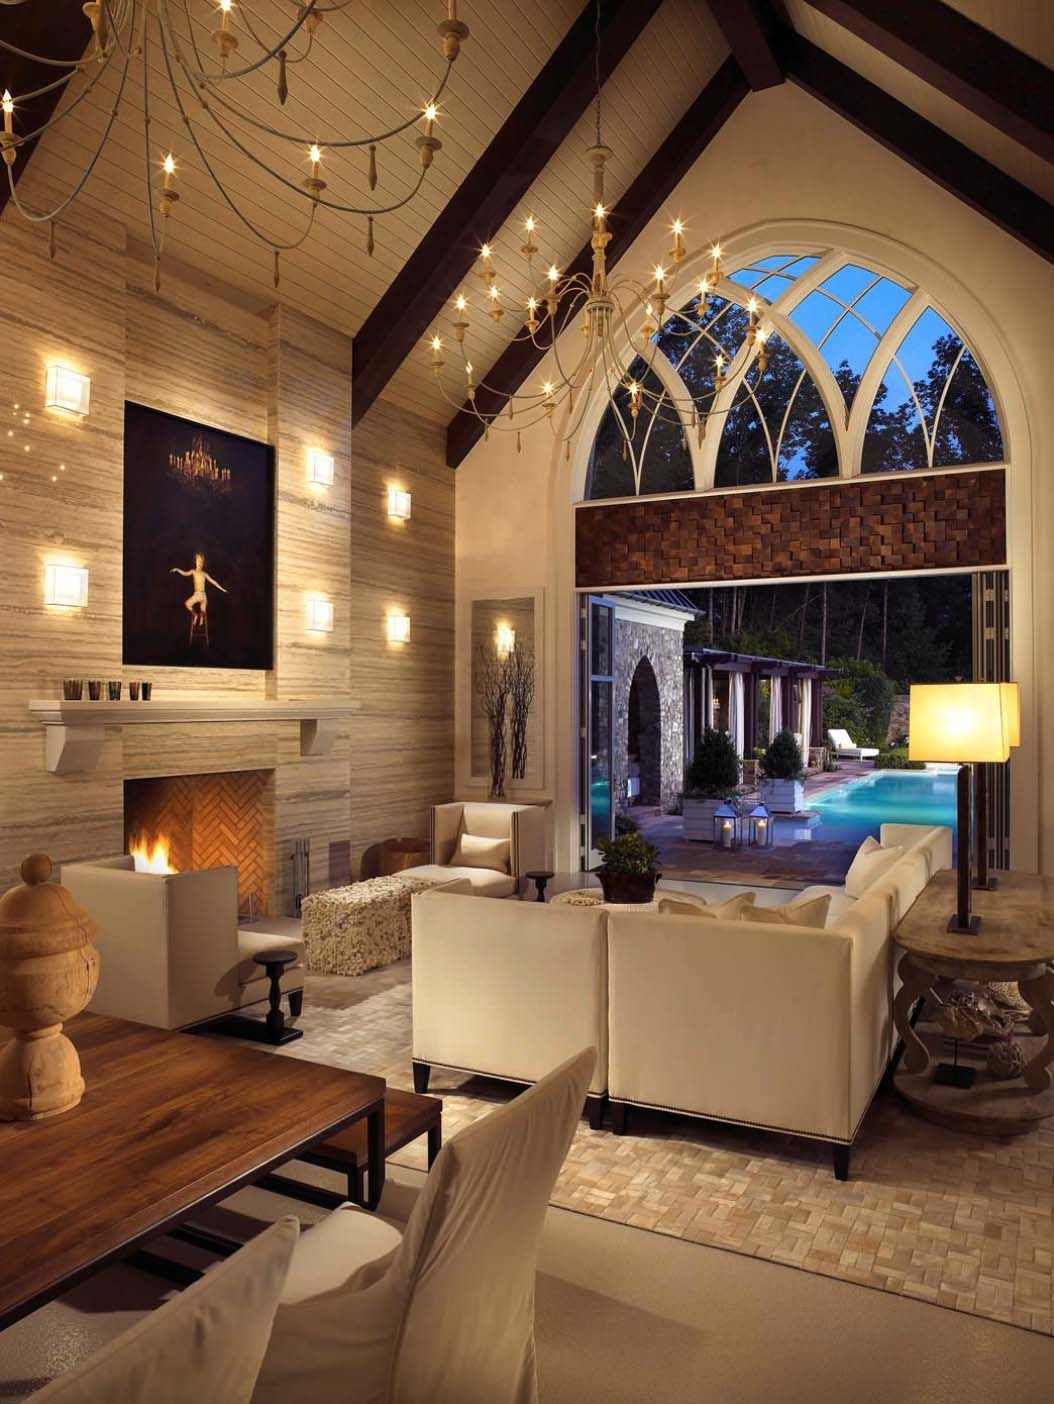 Pool Im Wohnzimmer Gothic Inspired Pool House In Nashville Showcases A Cellar For